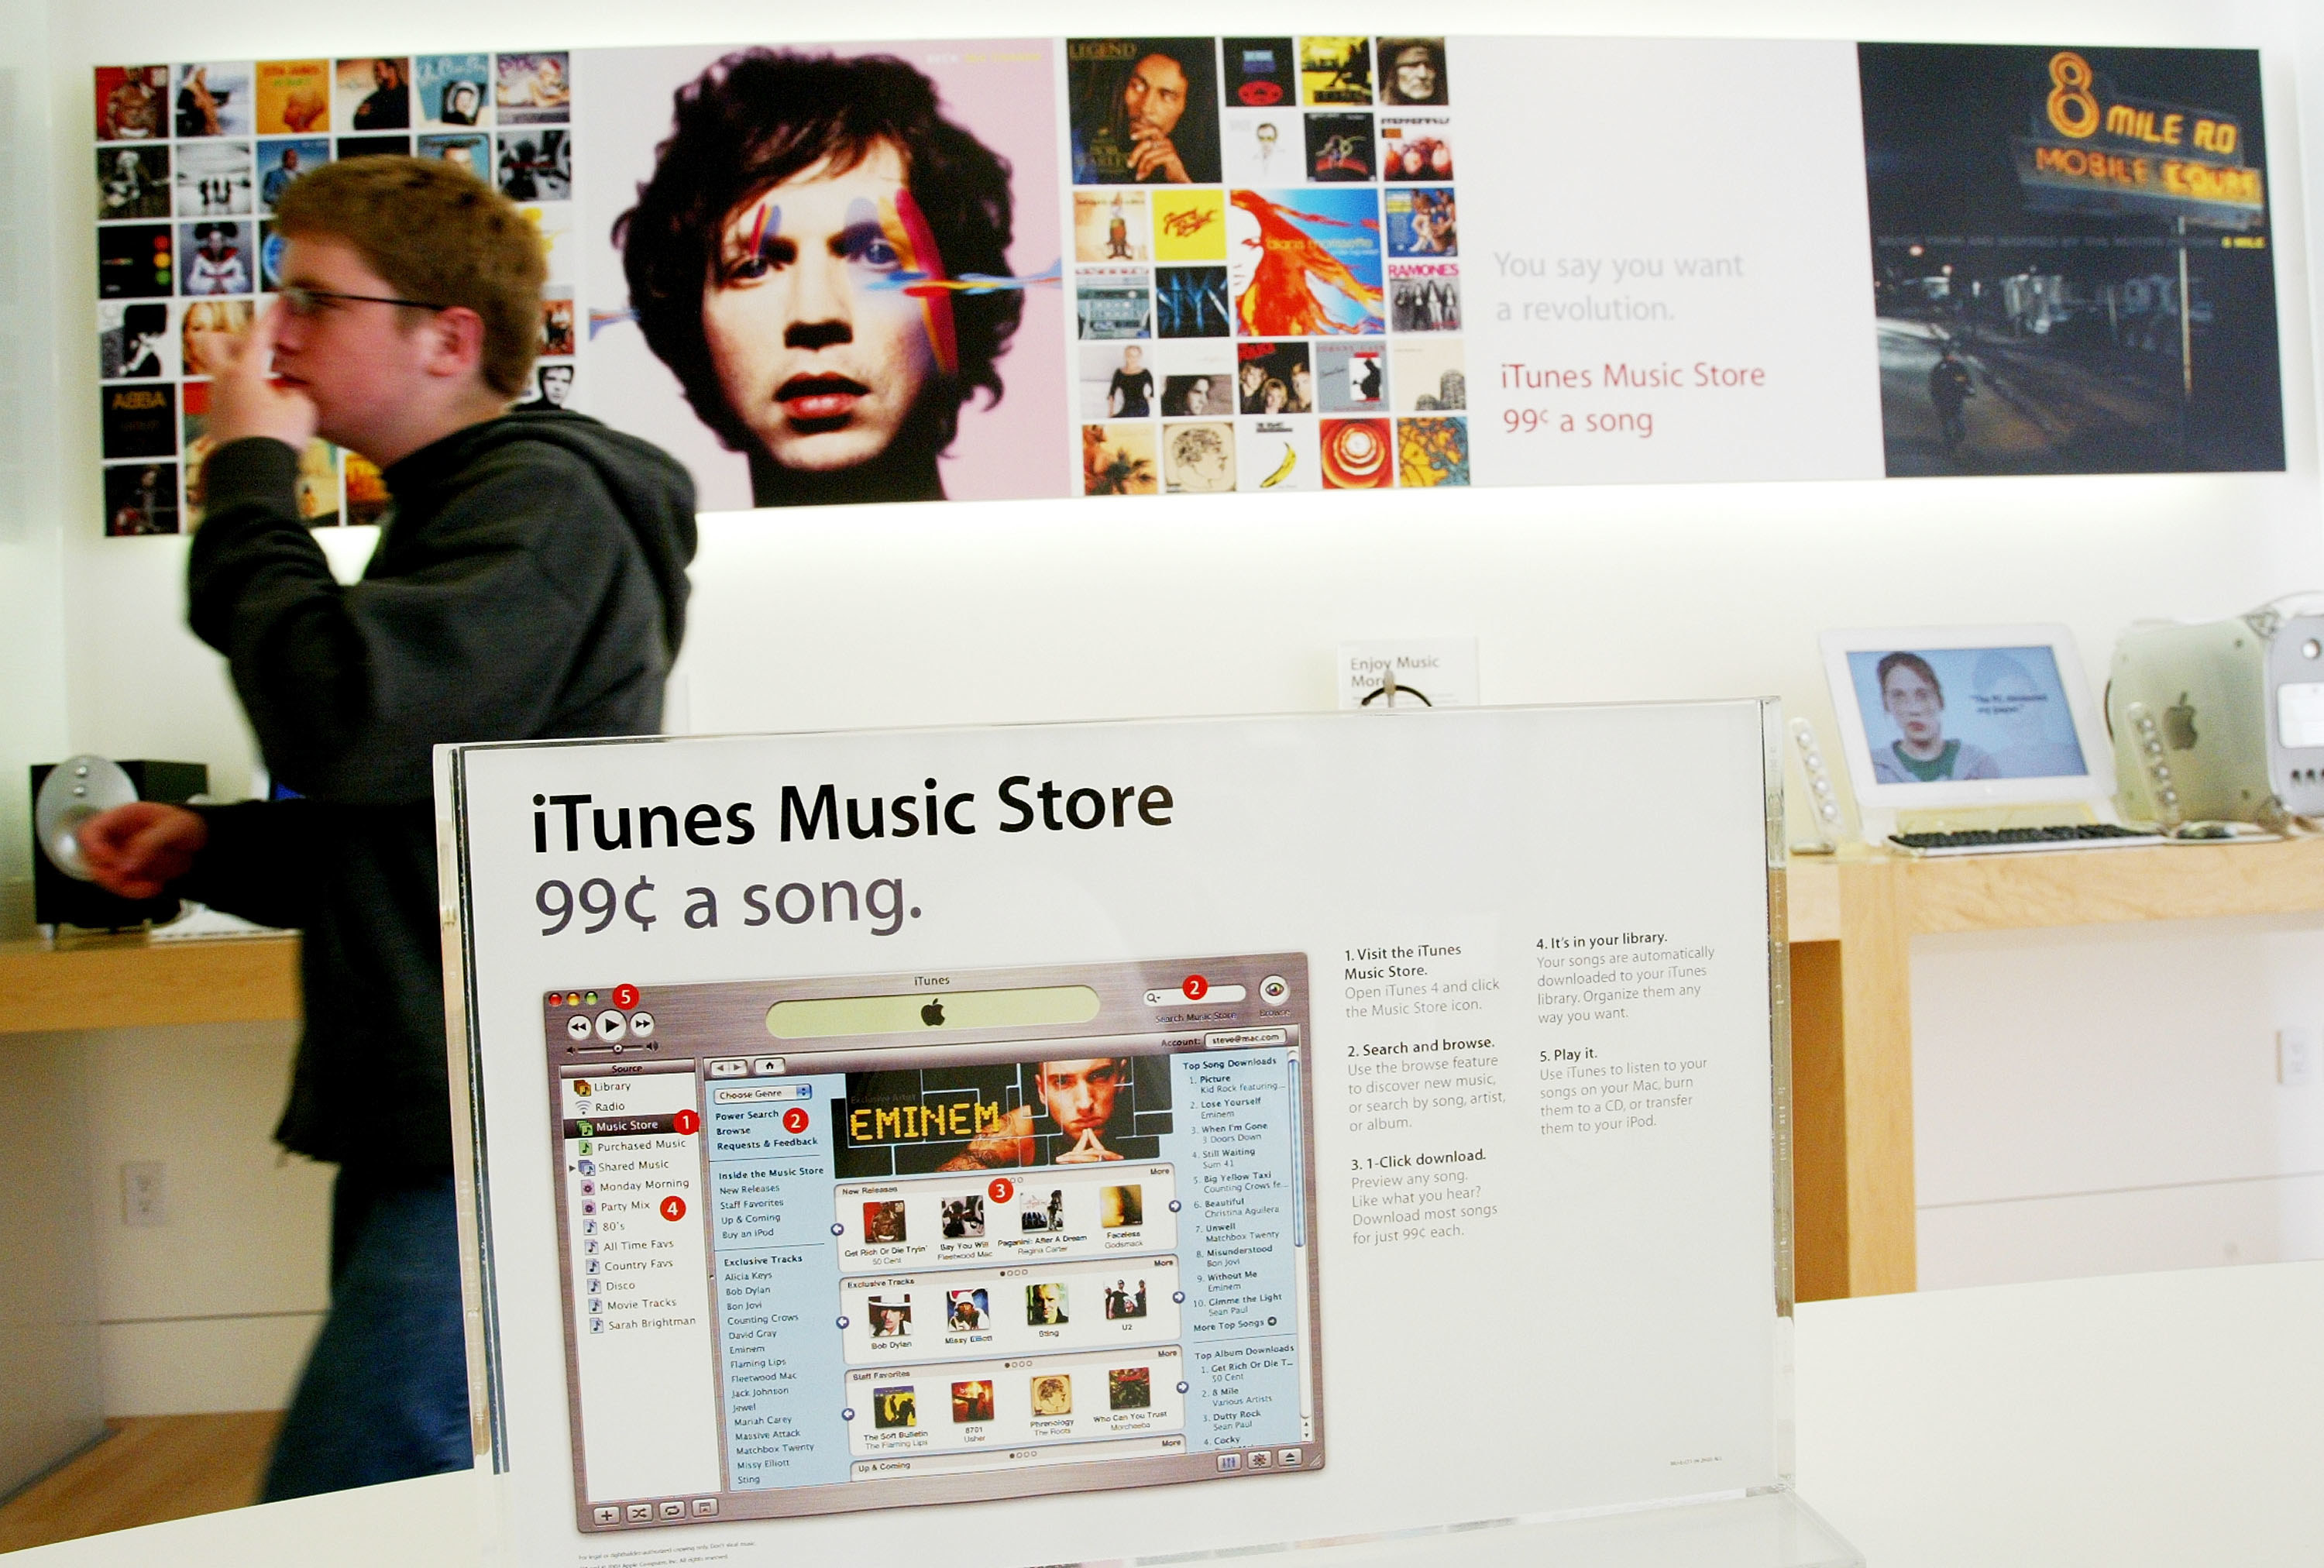 A display for Apple's iTunes Music Store in a Apple Store in Emeryville, California in 2003